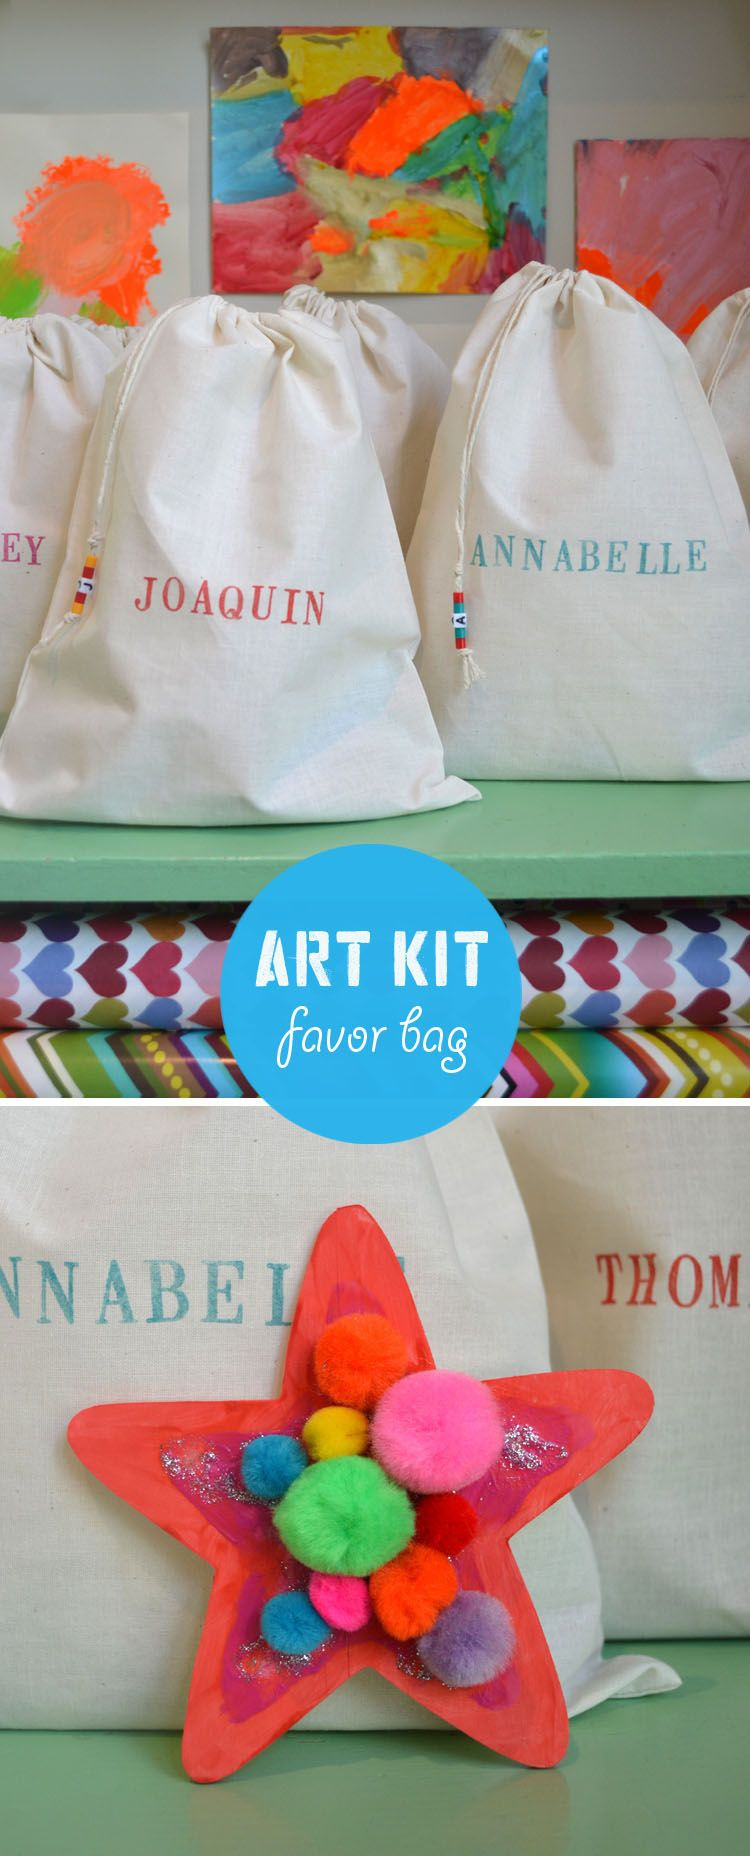 Art Kit Party Favor Party Planning New Pinterest Party